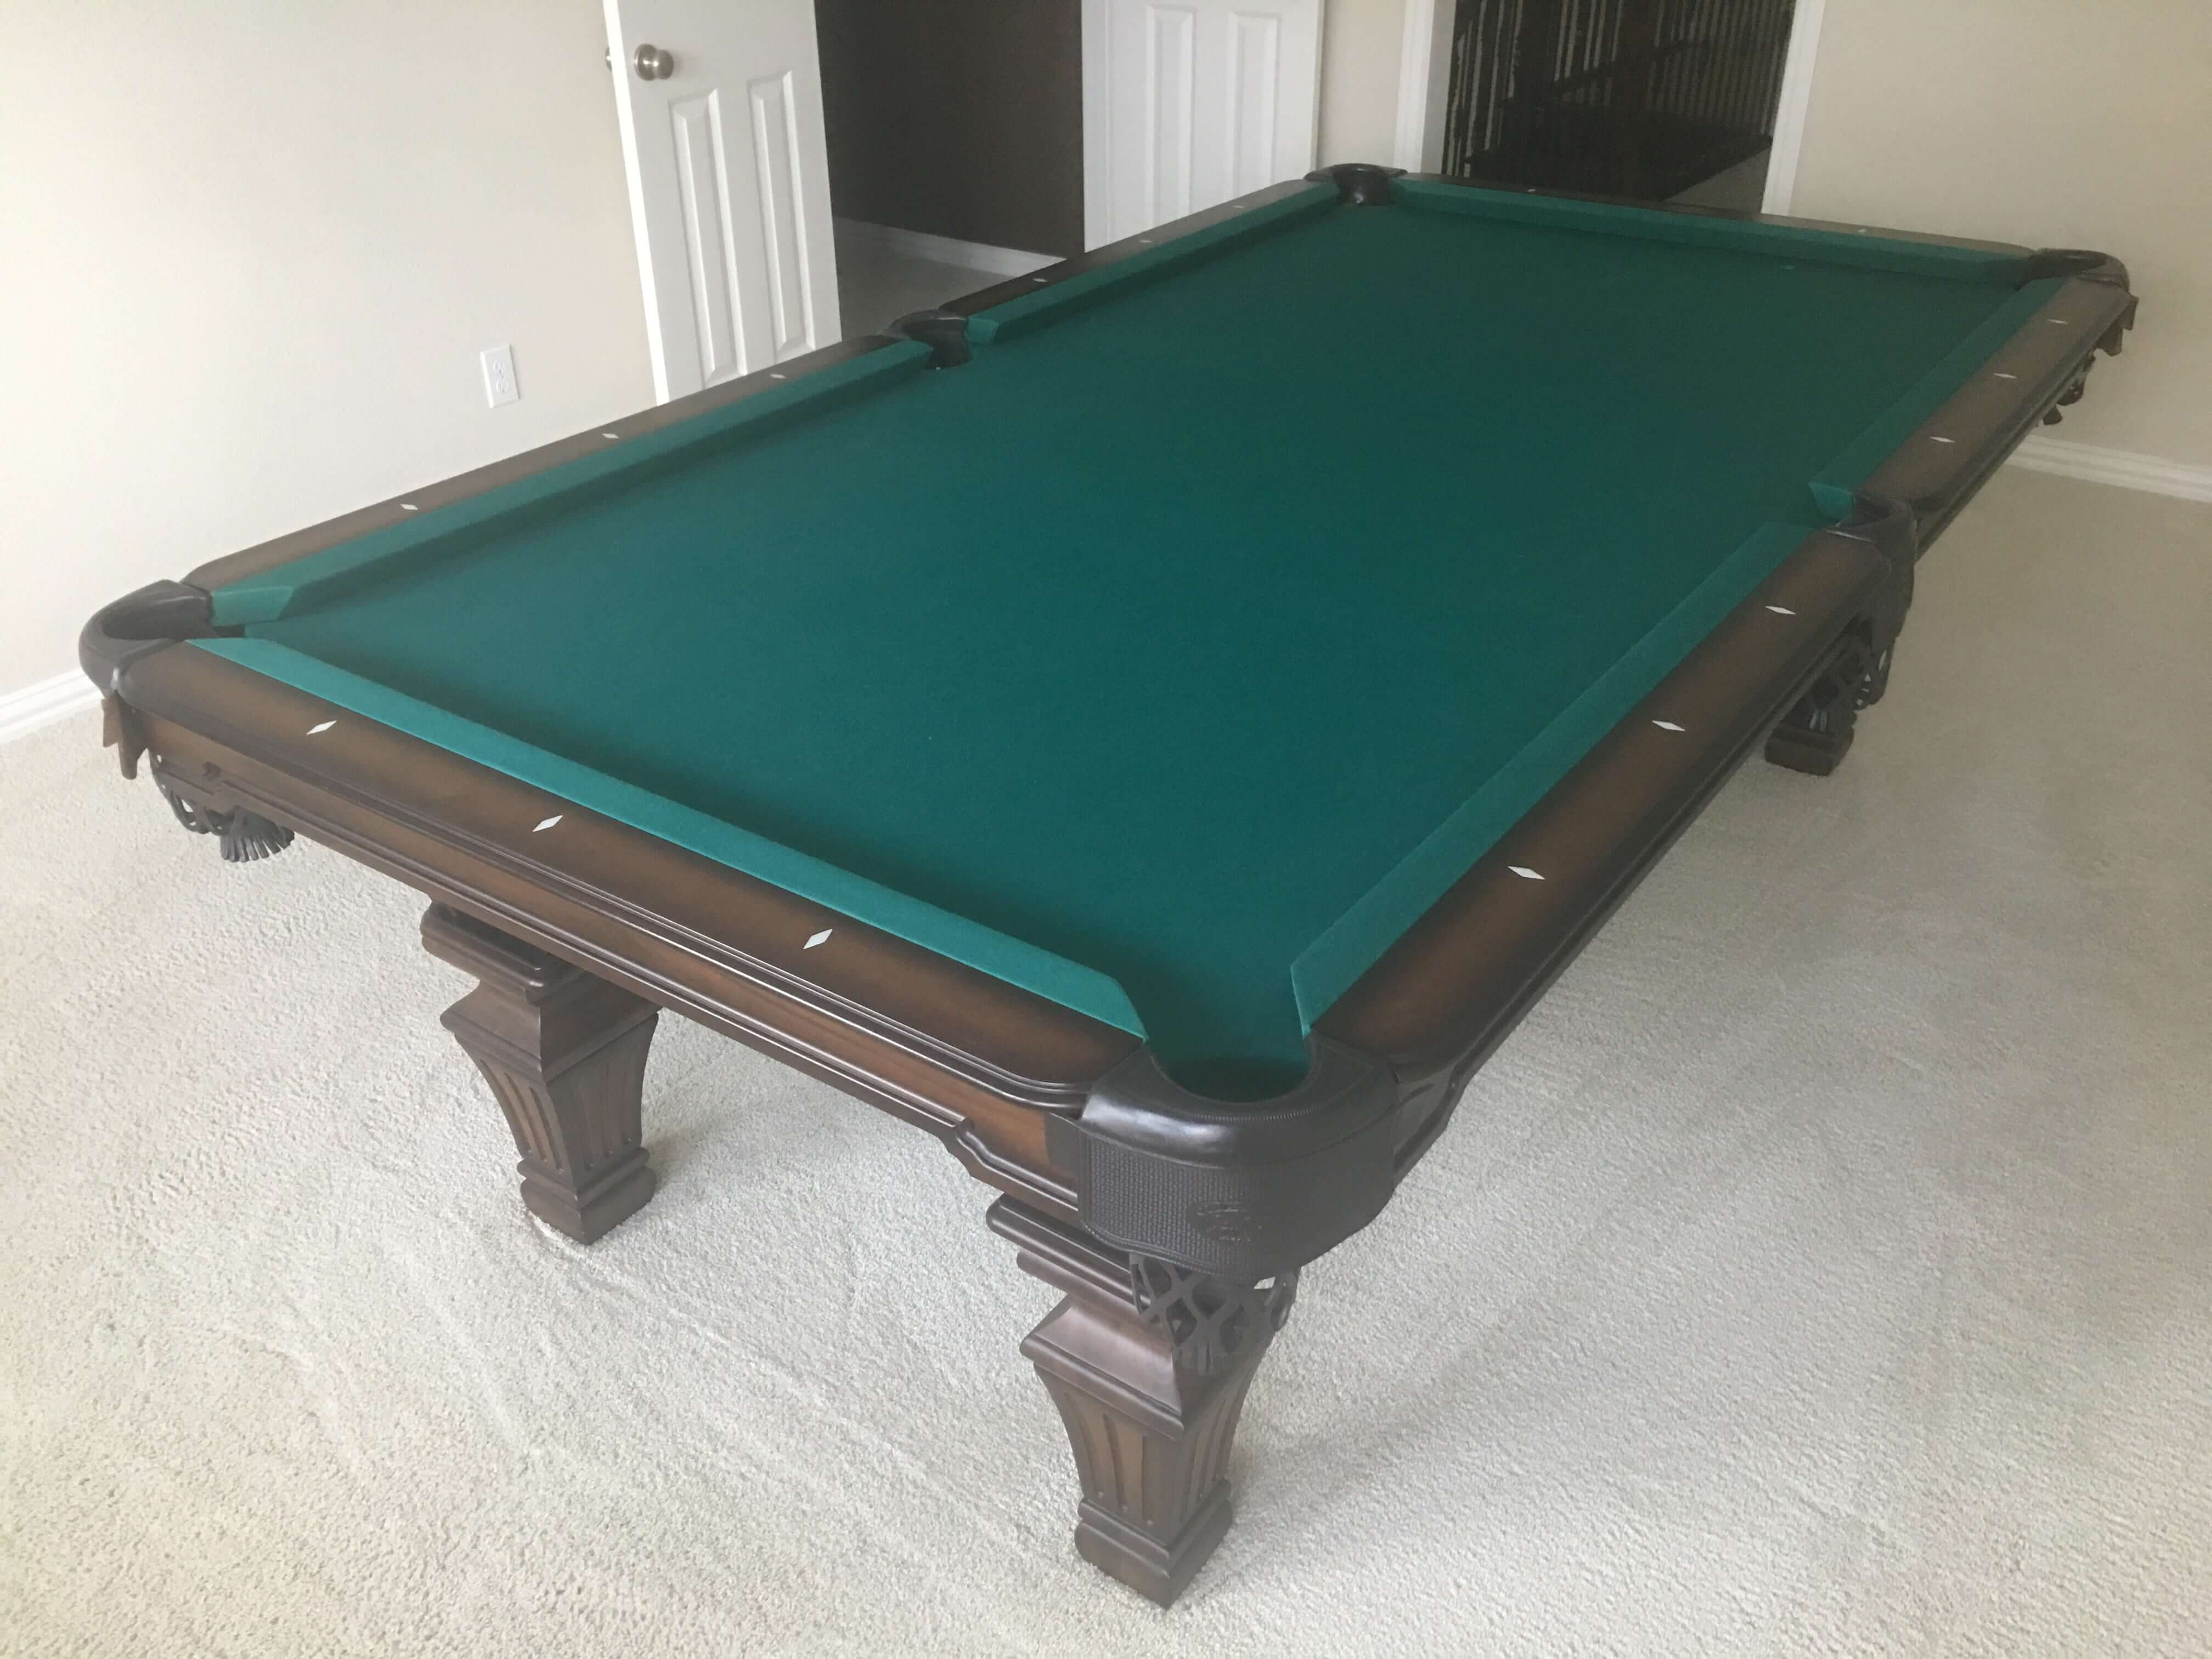 Pool table movers near me